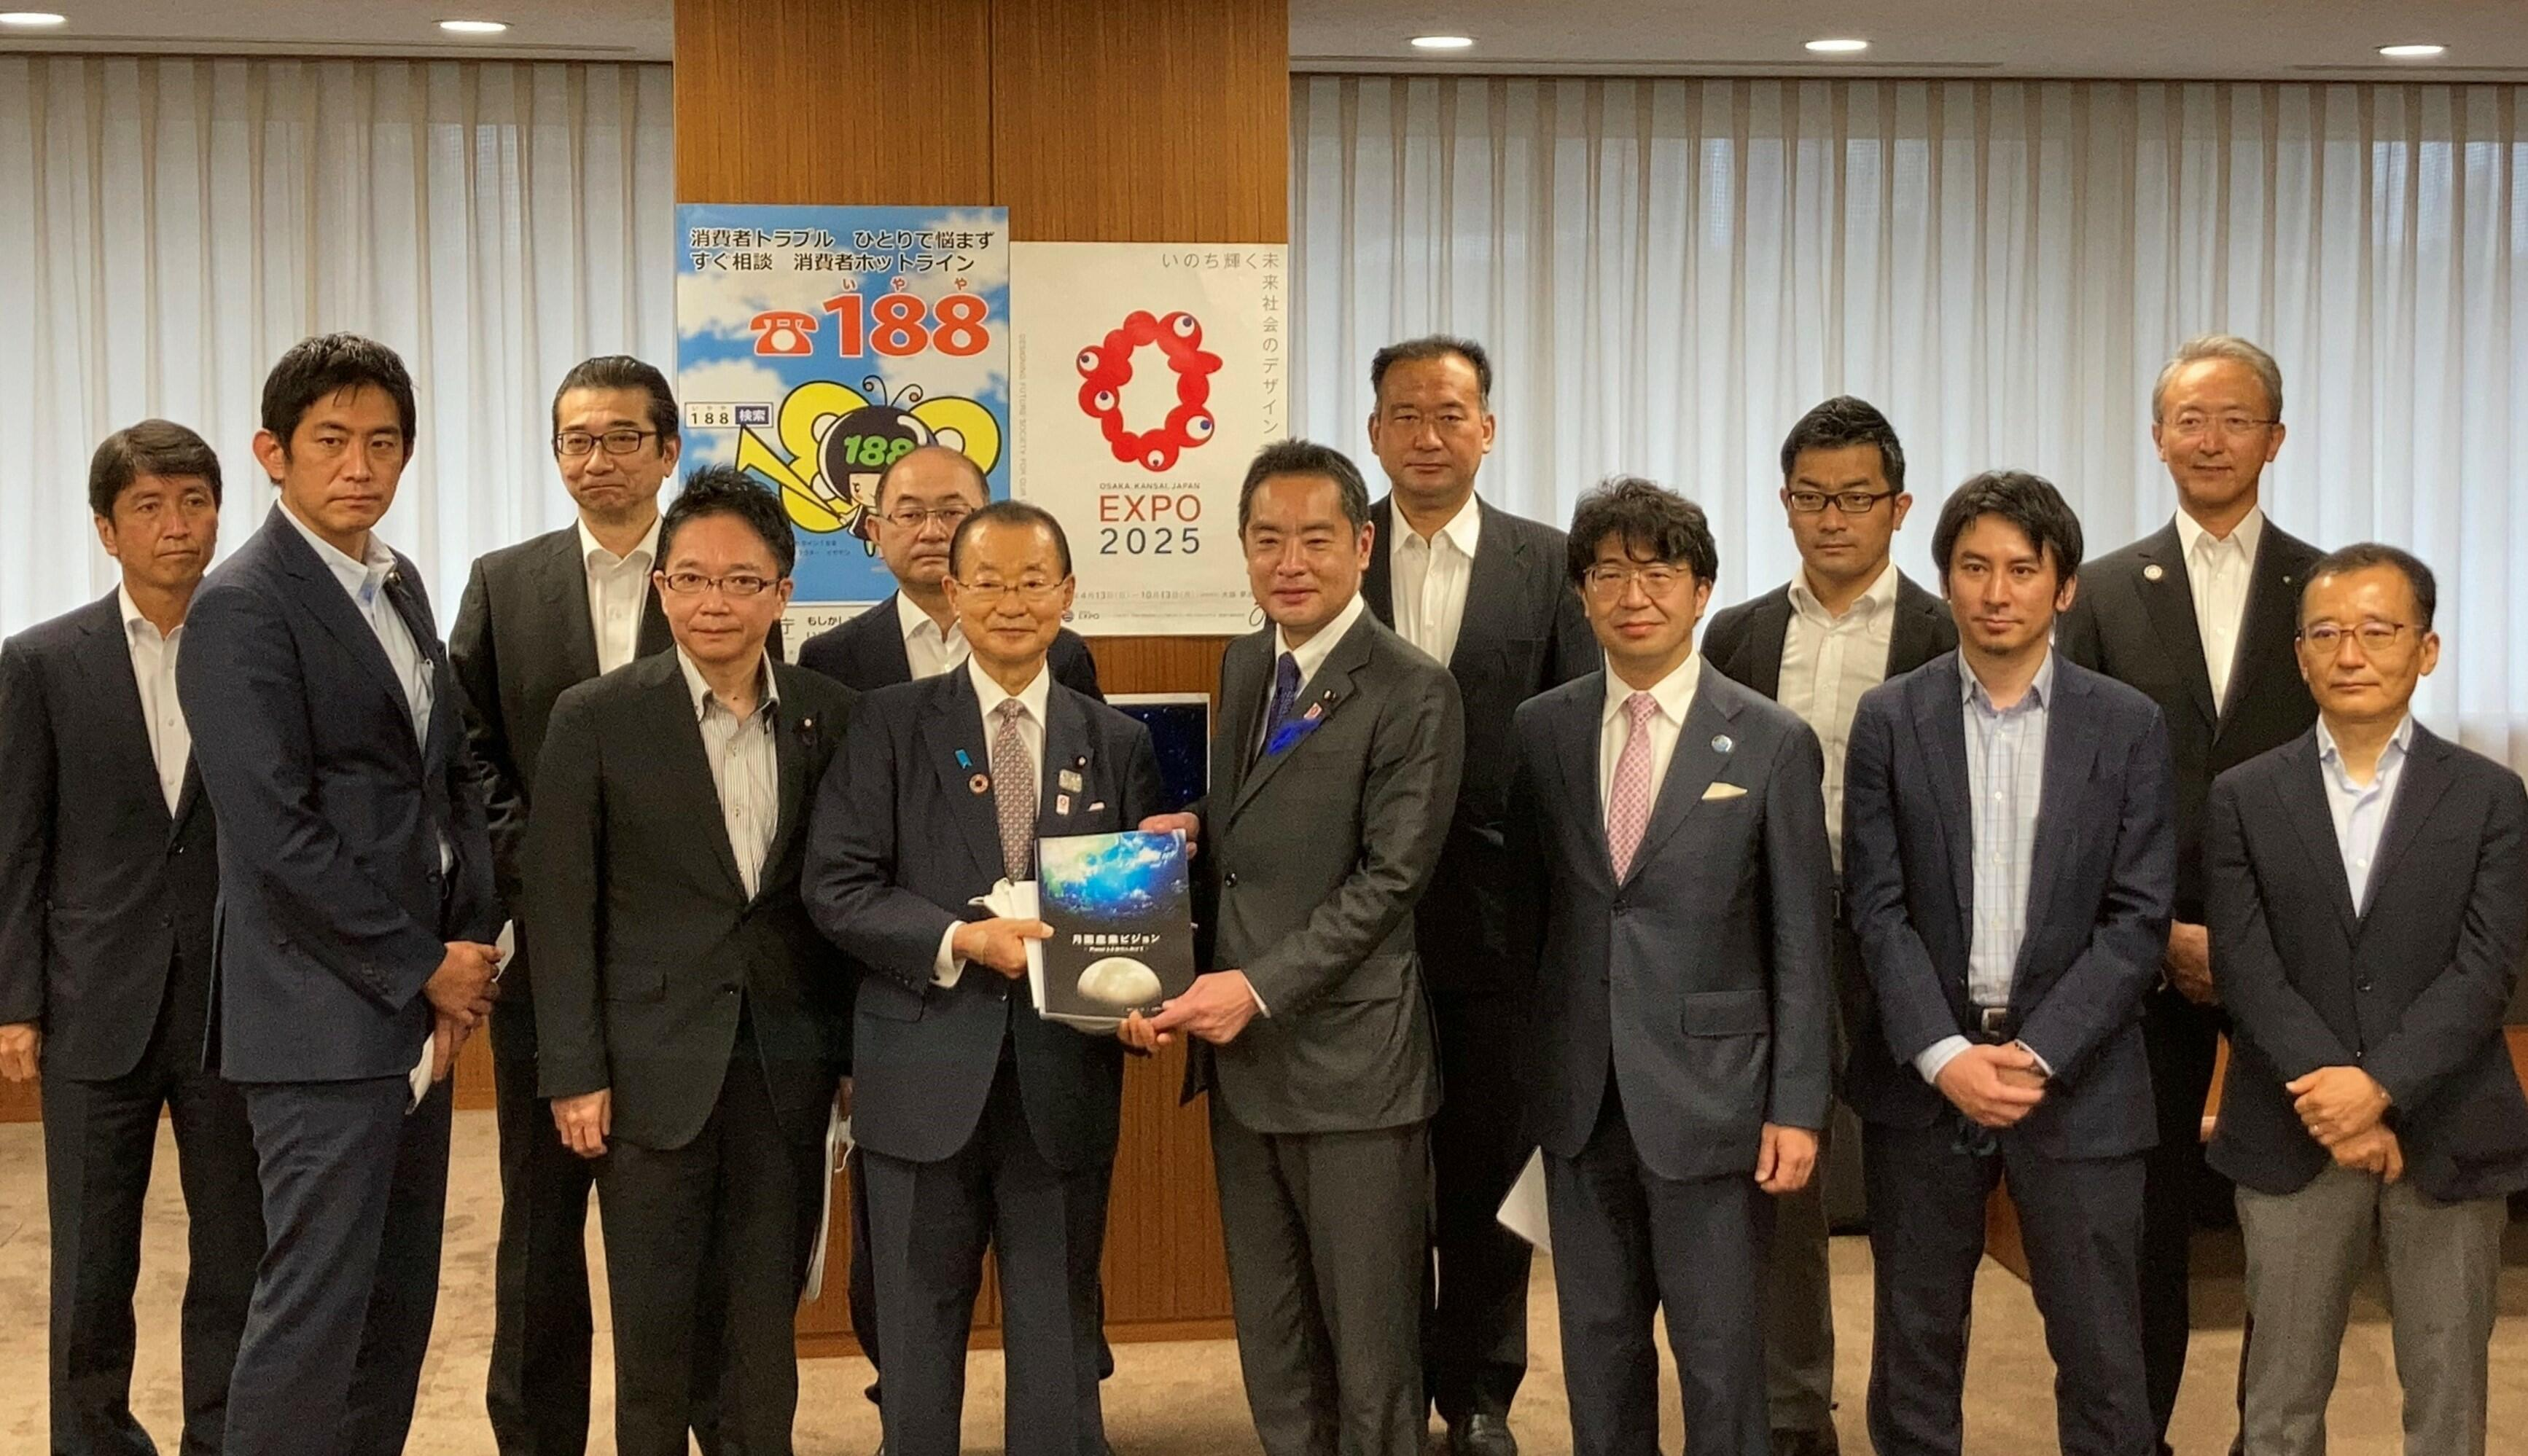 Takeo Kawamura, a member of the House of Representatives (sixth from the left), handing the Lunar Industry Vision to Minister of State for Science and Technology Policy Shinji Inoue, (seventh from the left), accompanied by Lunar Industry Vision Council representatives and Senior Executive Officer Takuya Hanada of JGC Corporation (third from the left)